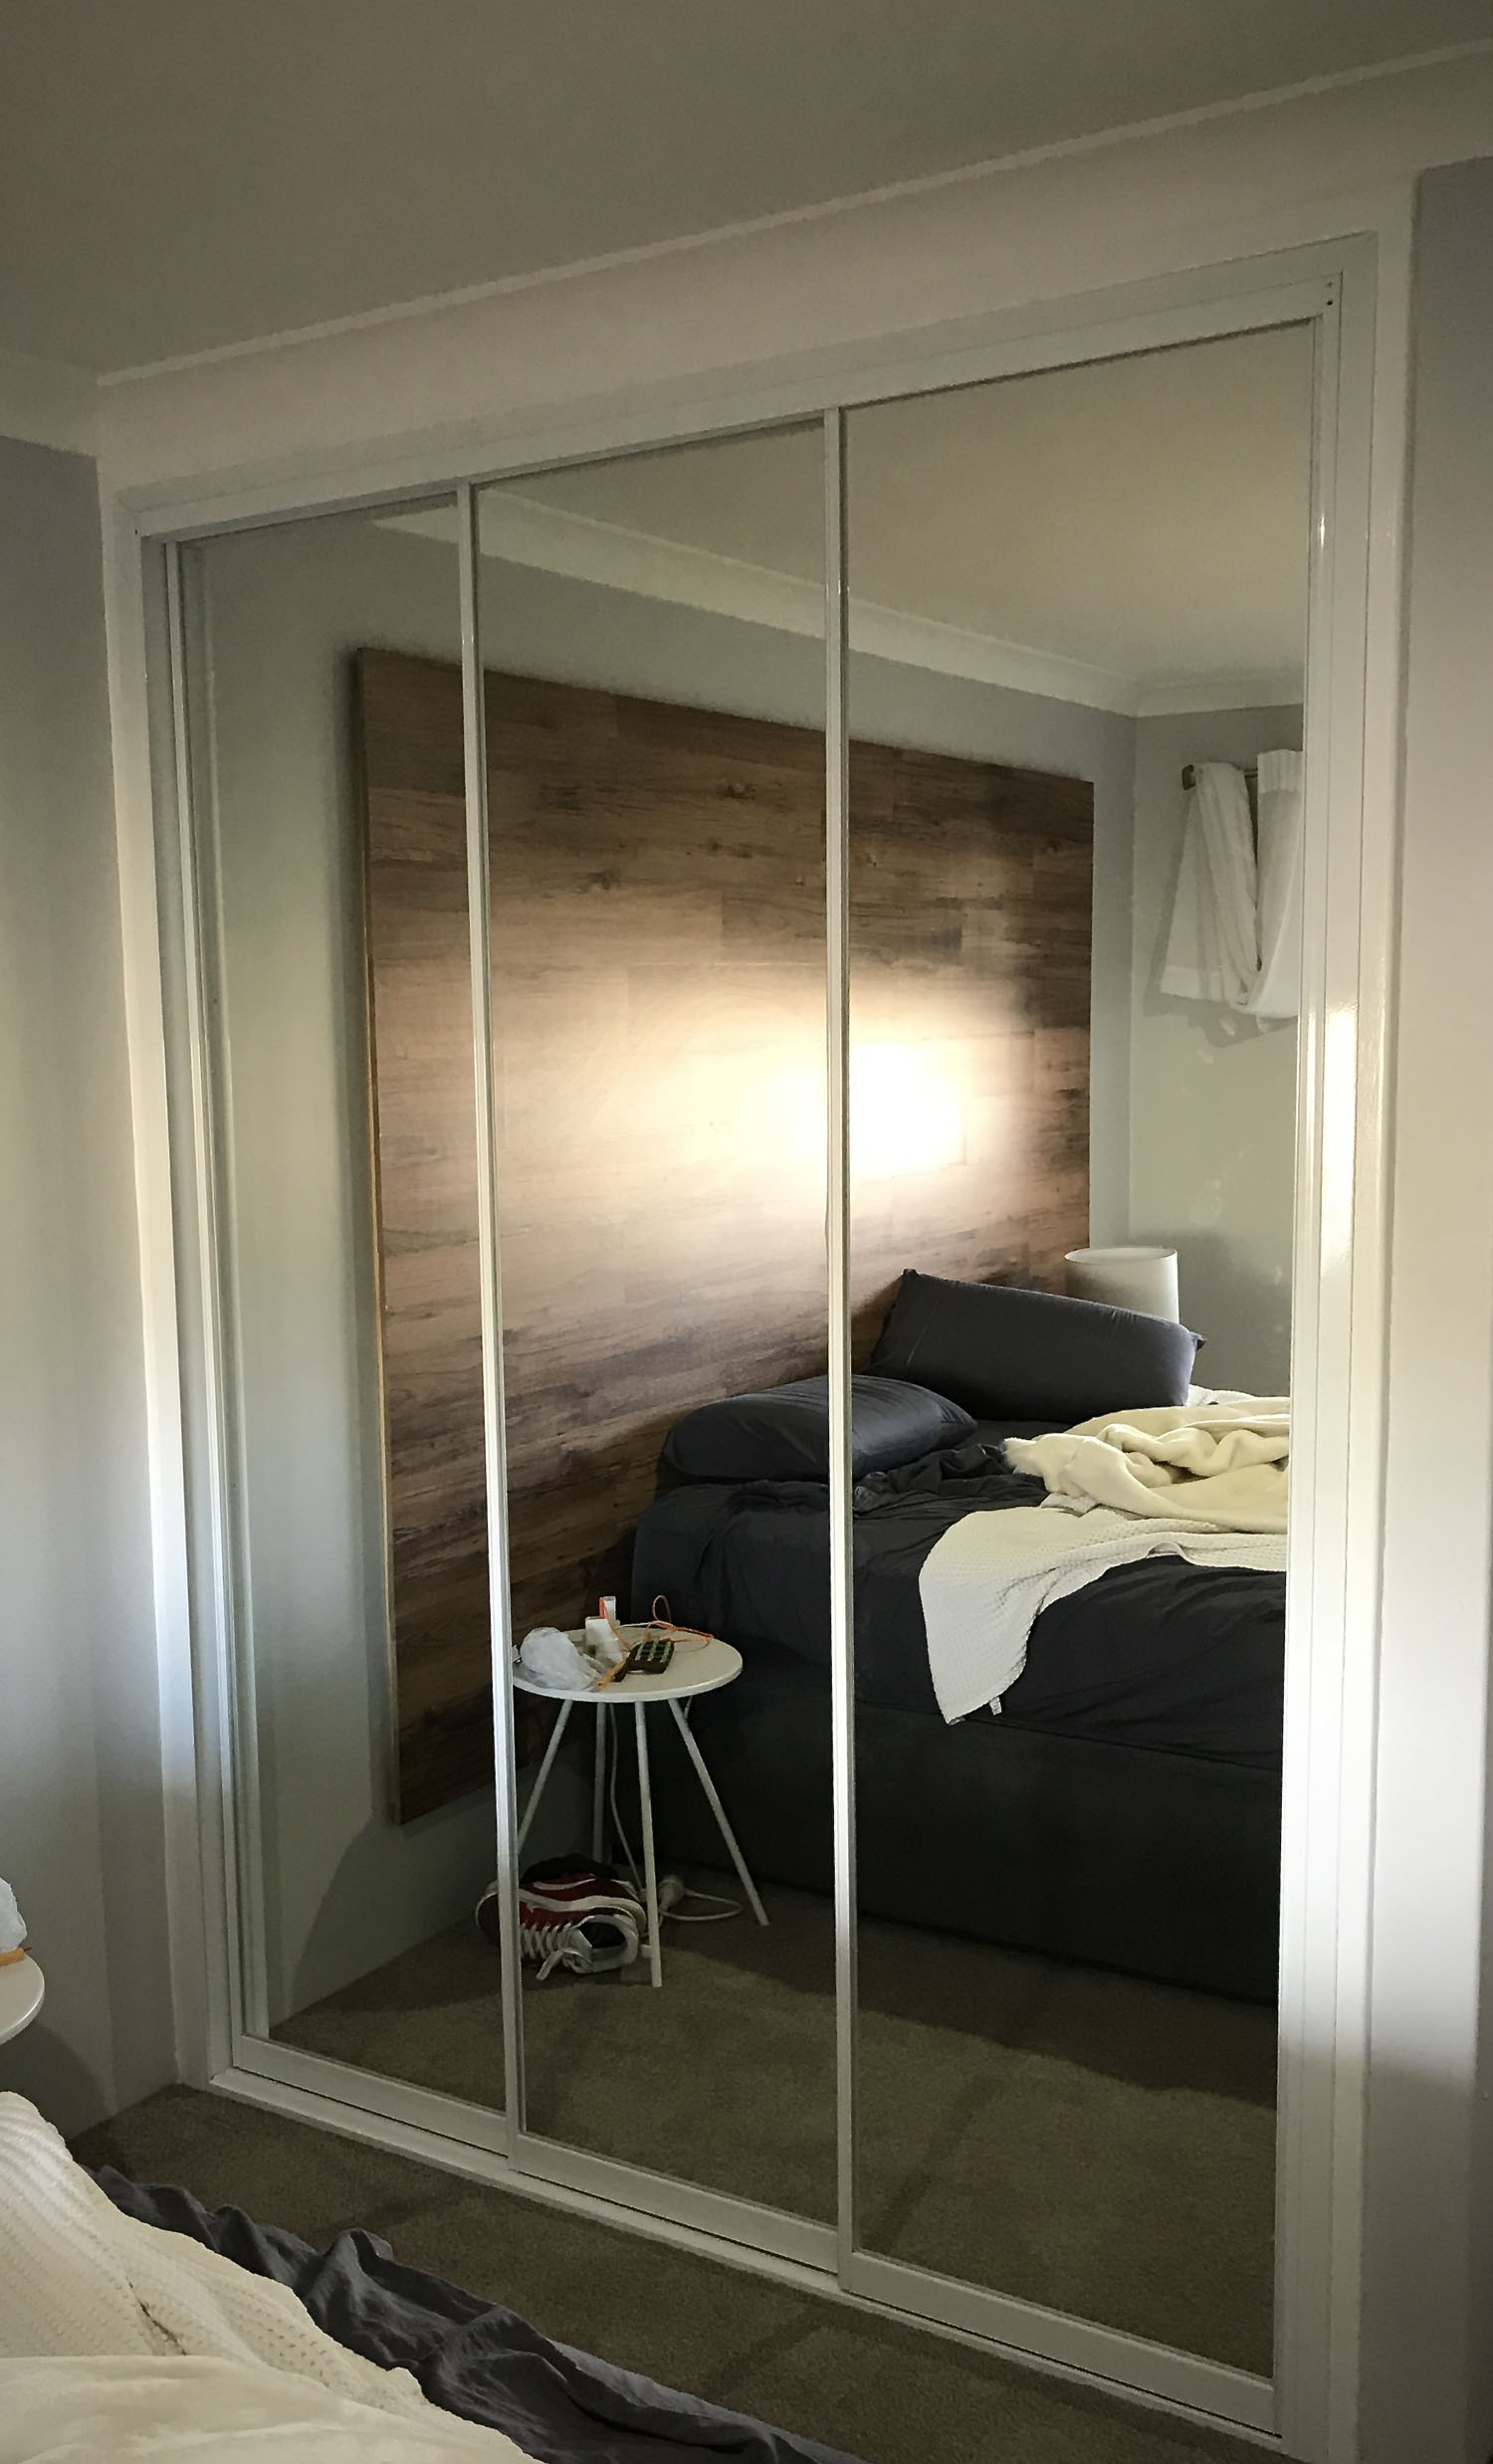 3 Door wardrobe door unit 3 mirrored doors in white frame